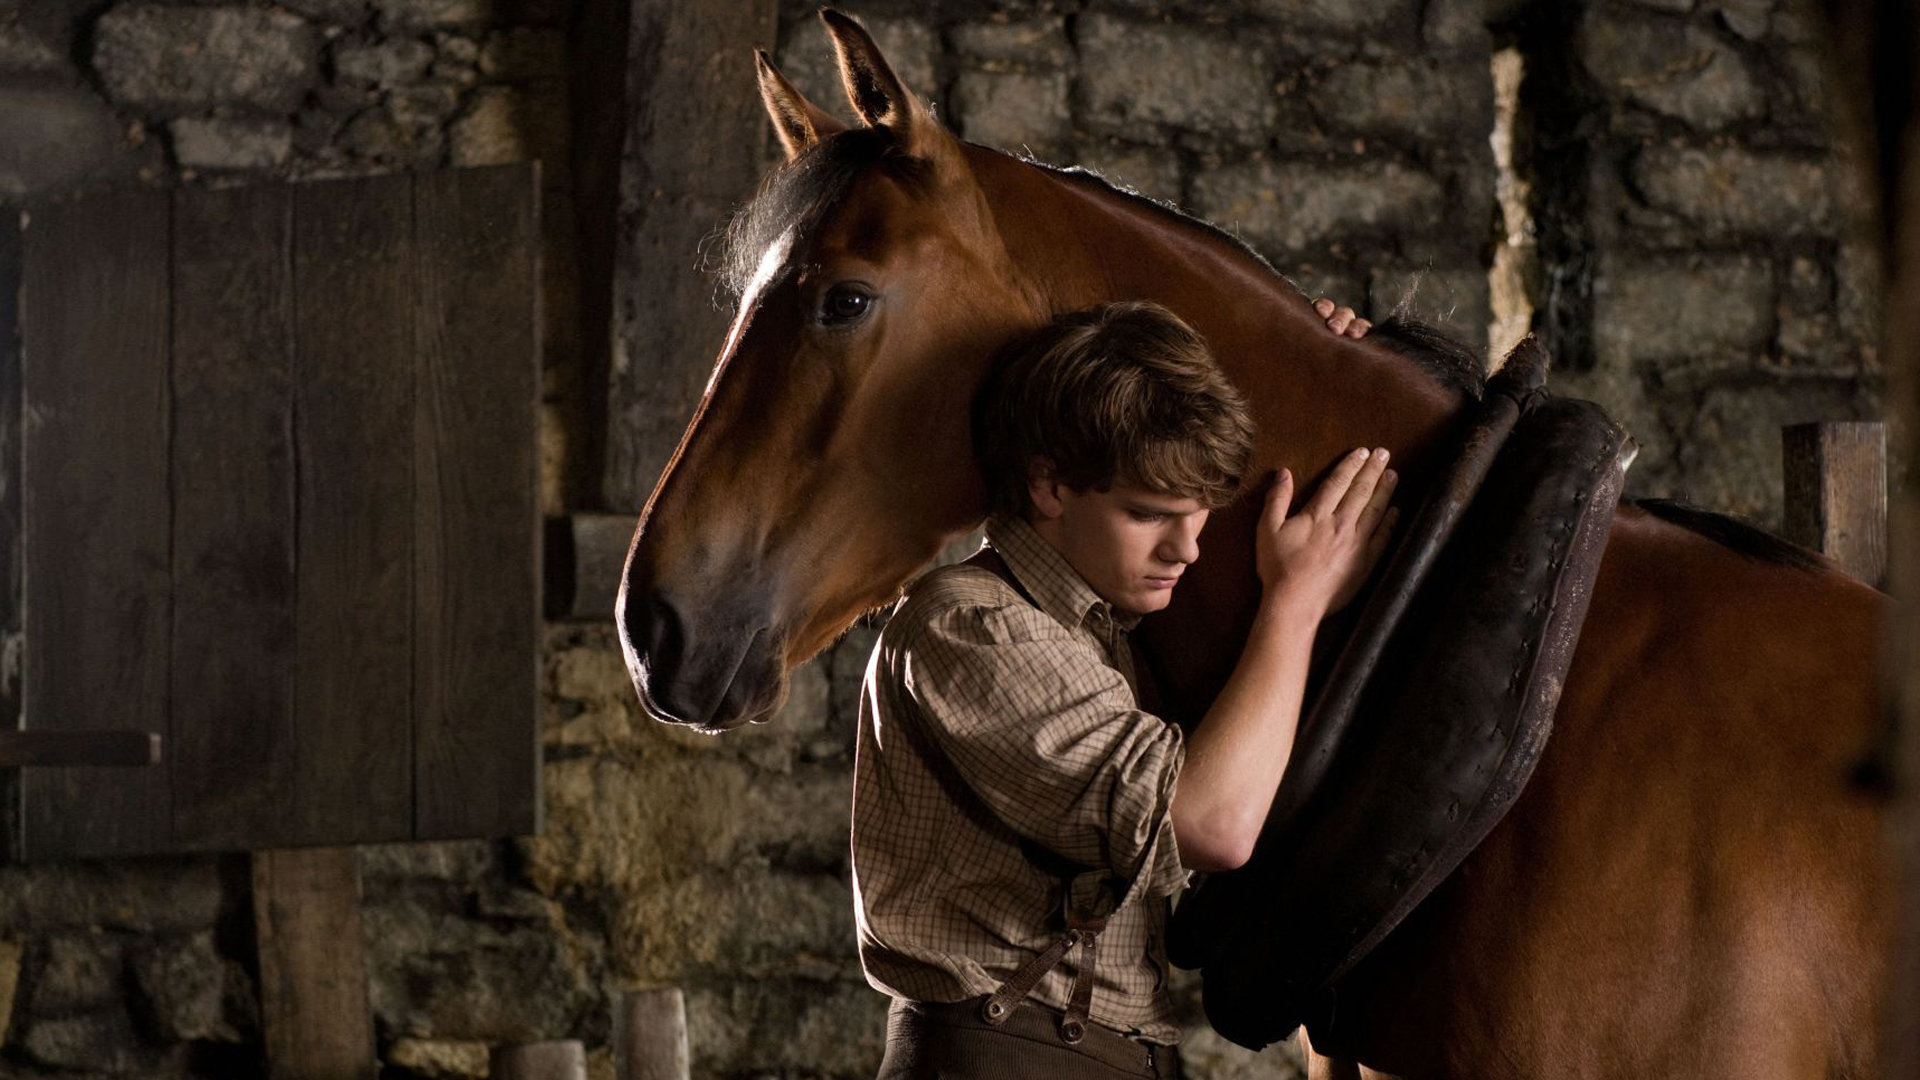 War Horse Wallpapers 1920x1080 Full Hd 1080p Desktop Backgrounds